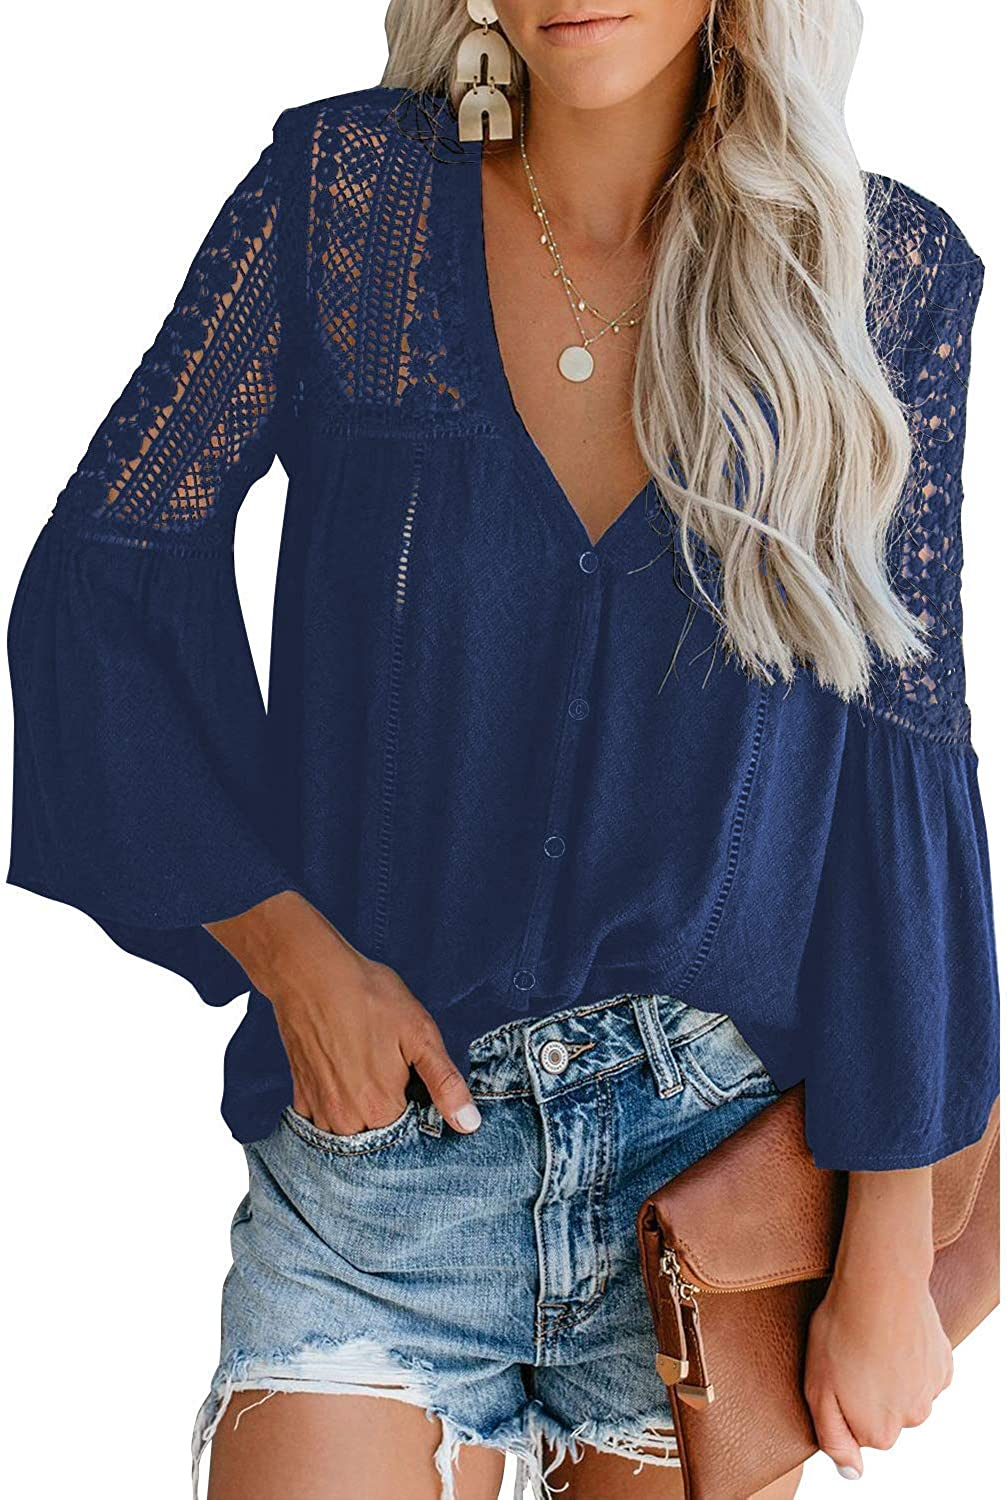 Qalaru Women Lace Crochet V Neck Tunic Shirts Bell Sleeve Button Down Casual Blouses Tops